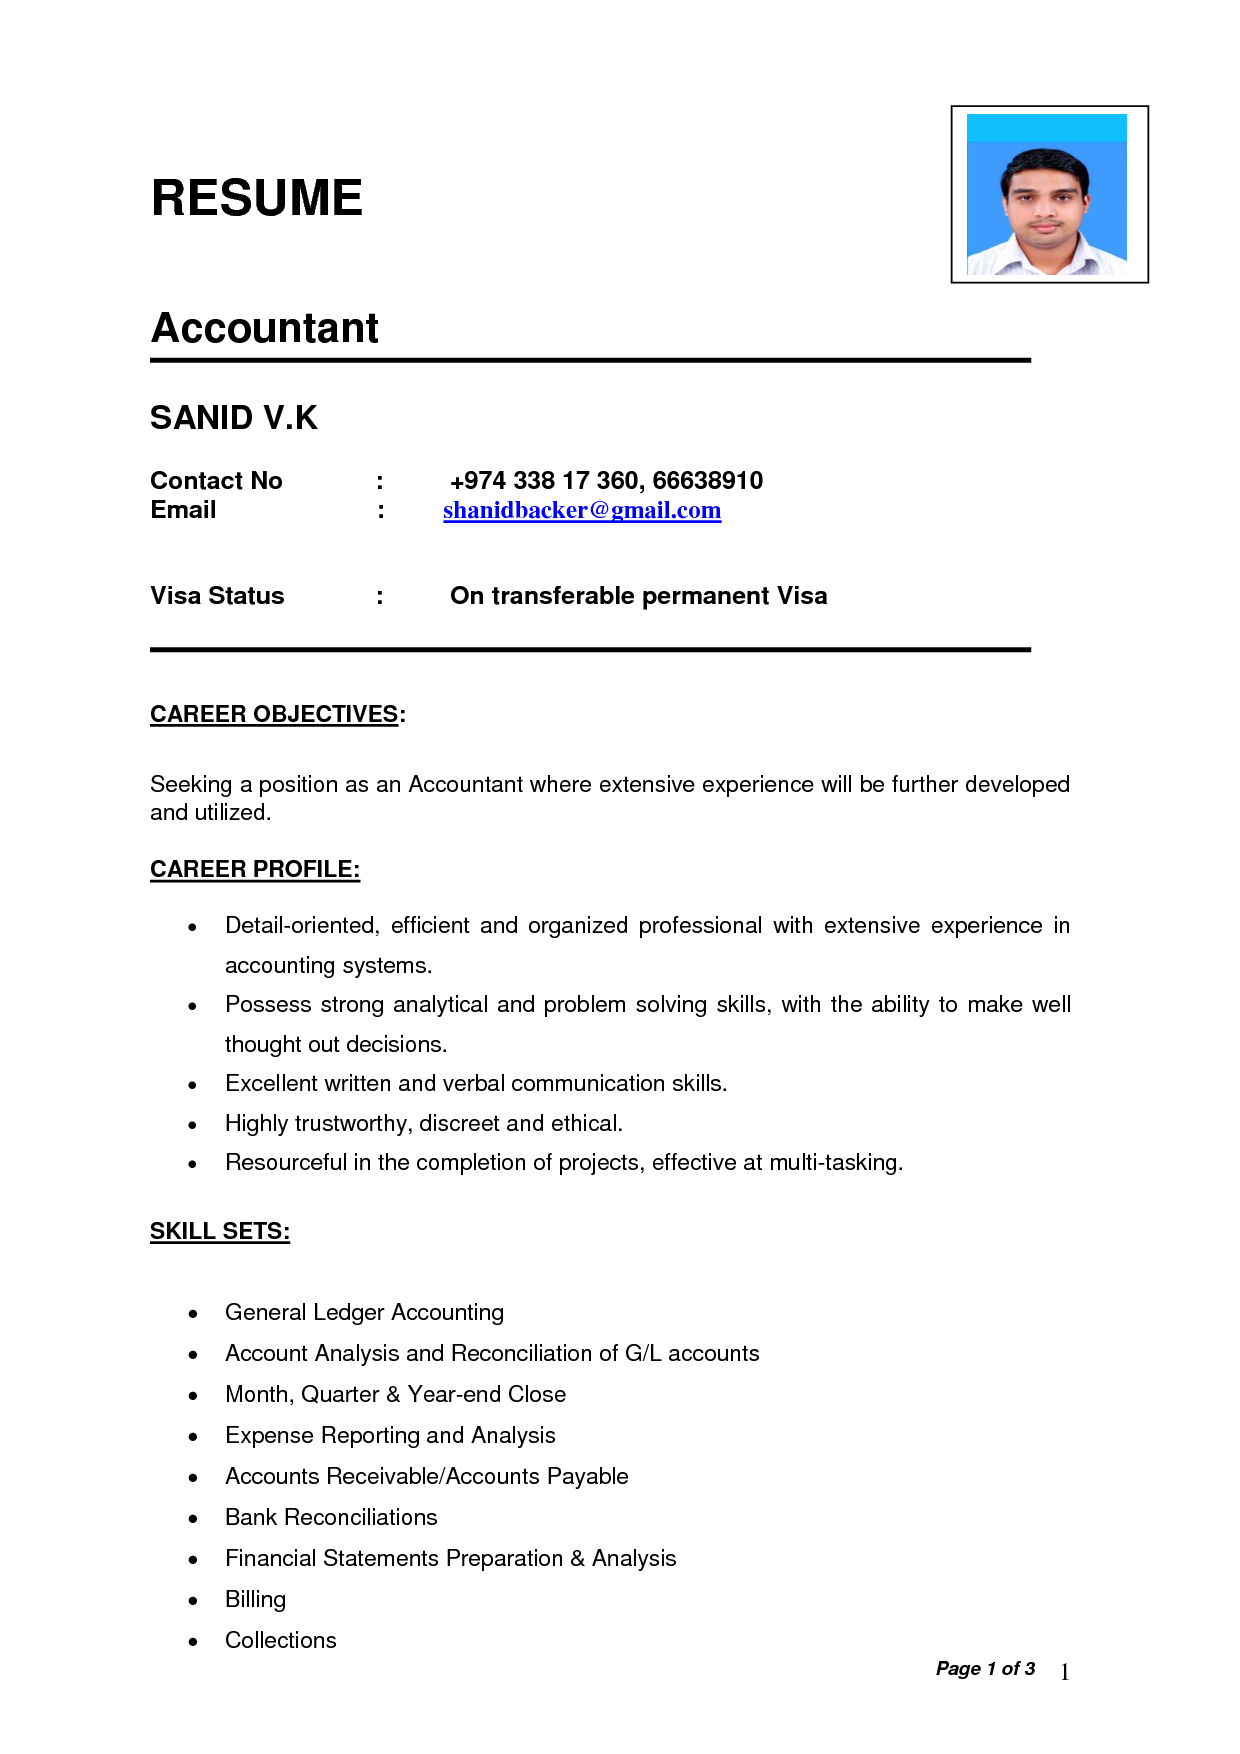 Indian Resume Format For Freshers Engineers Resume Format Used In India 2 Resume Format Pinterest